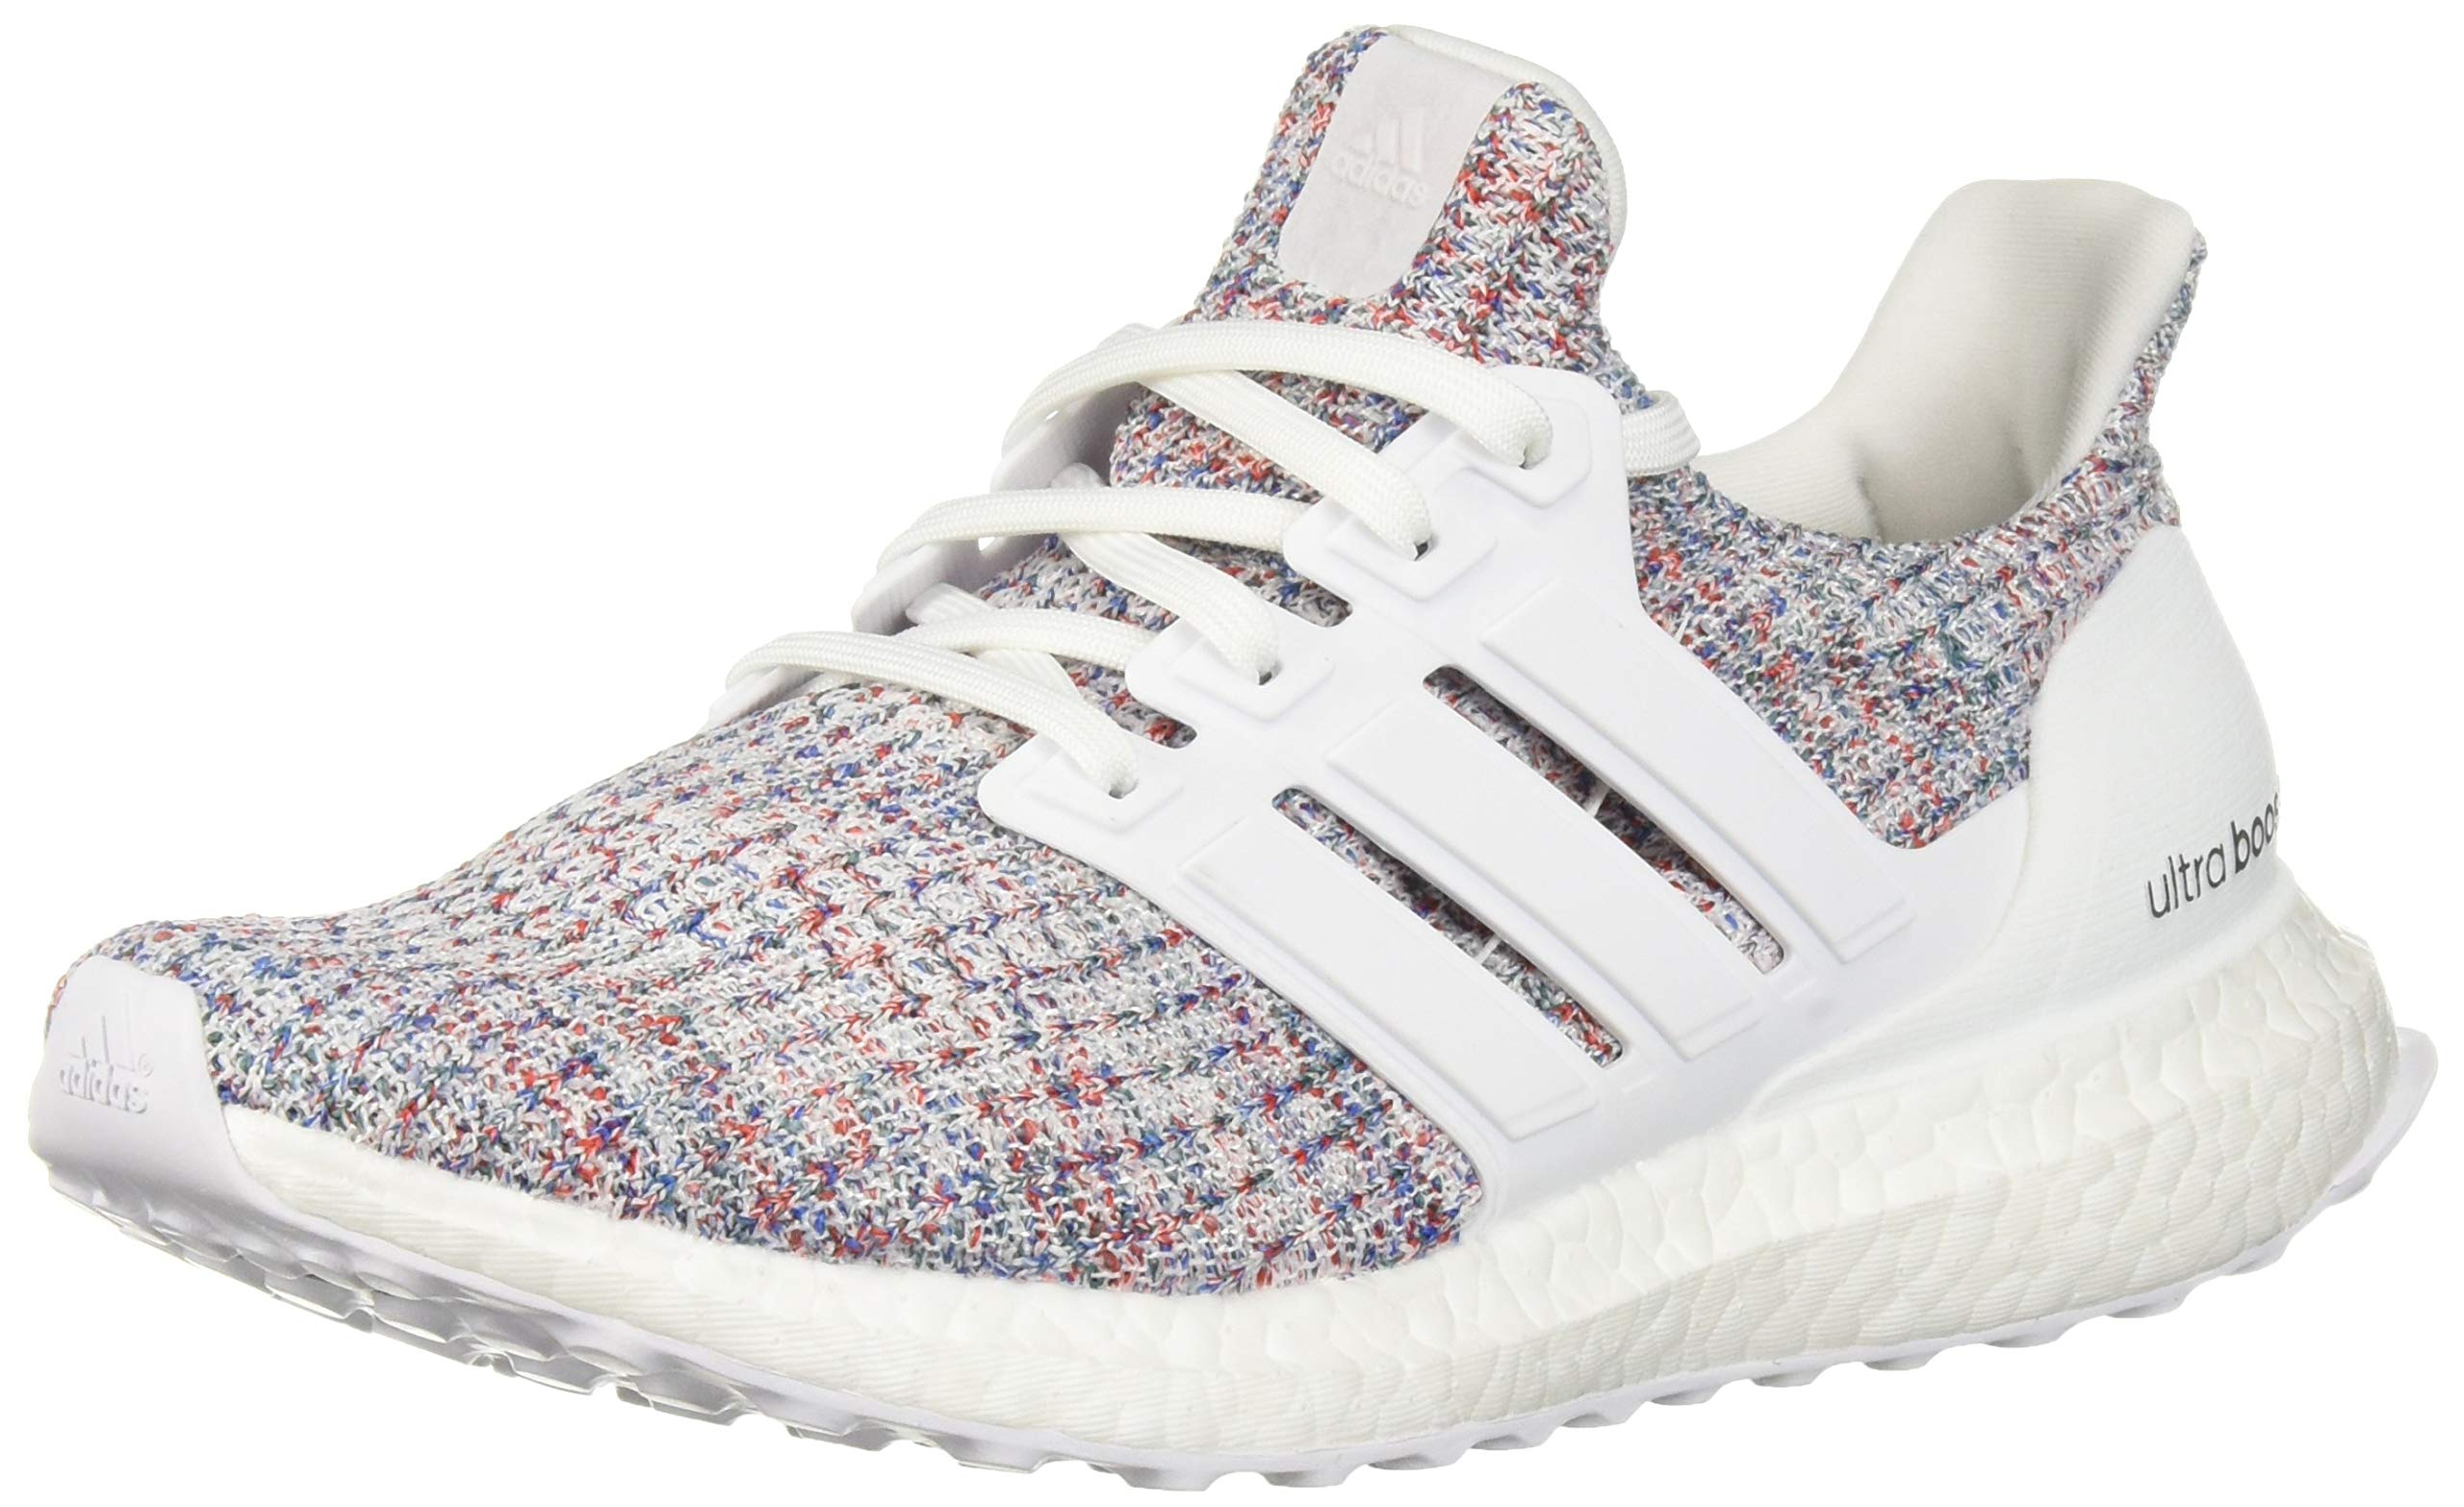 adidas Women's Ultraboost, White/Active red, 10.5 M US by adidas